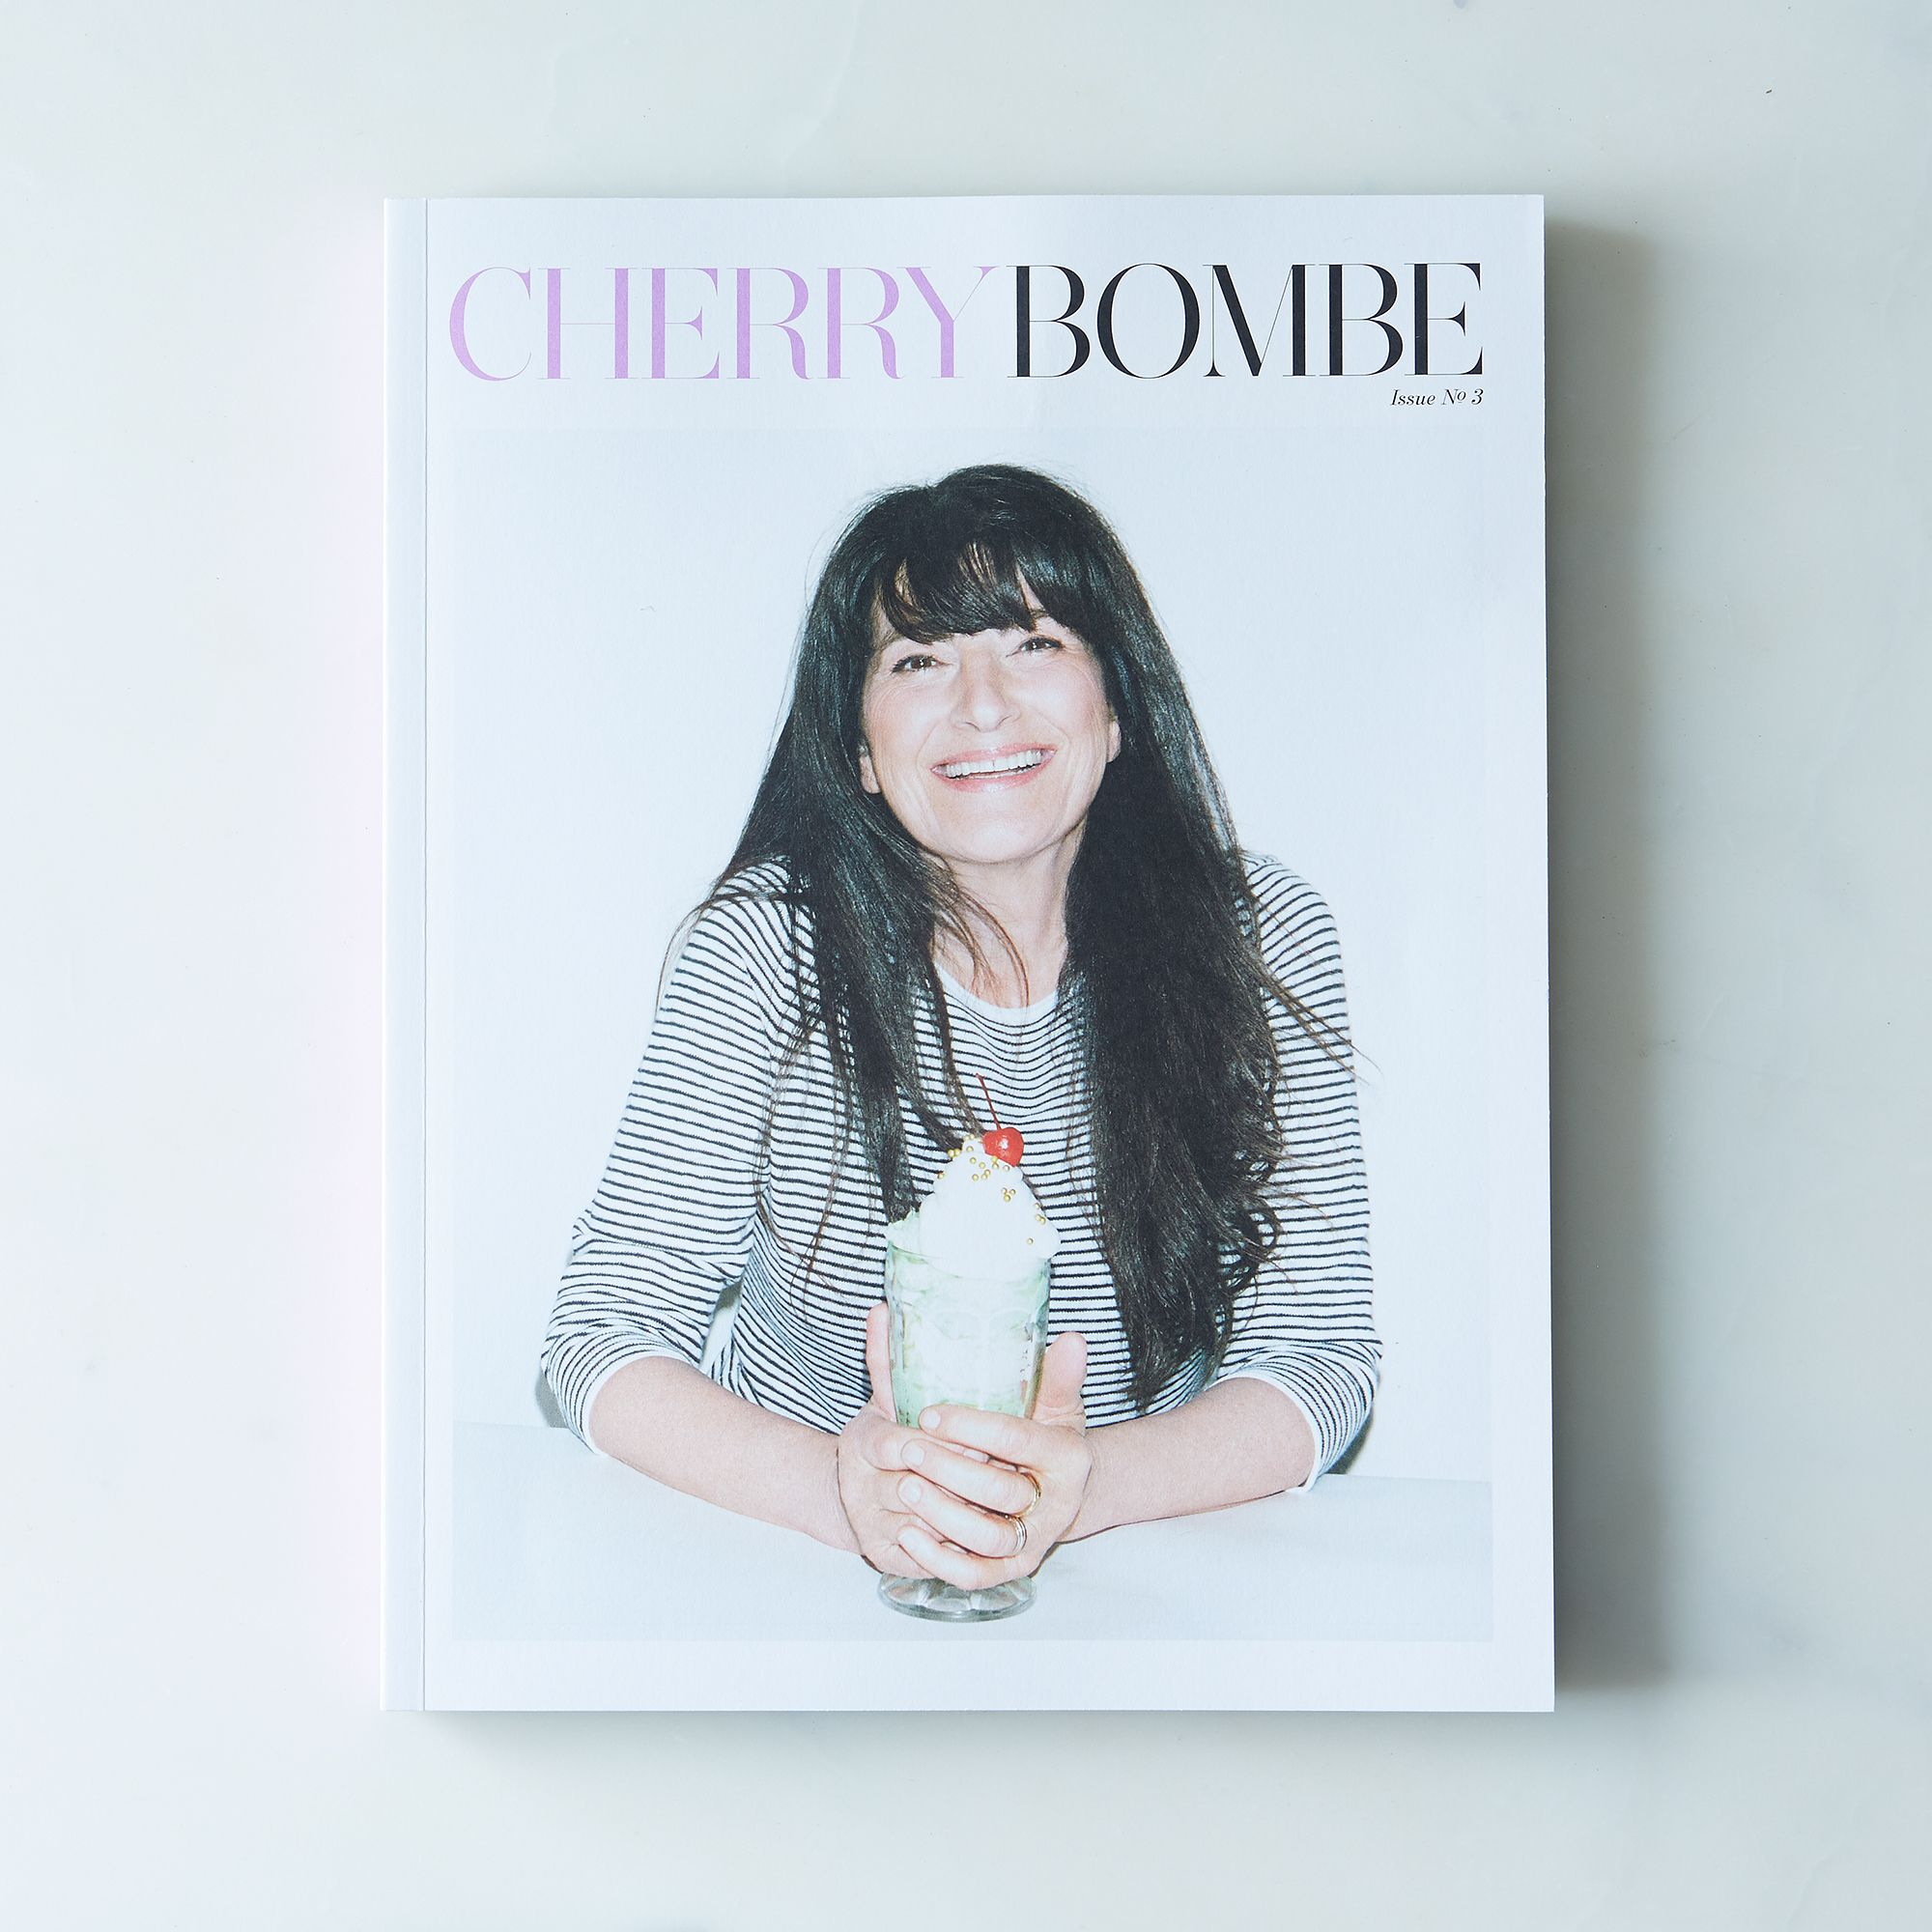 75634e46 a0f6 11e5 a190 0ef7535729df  cherry bombe issue3 provisions mark weinberg 02 07 14 0652 silo